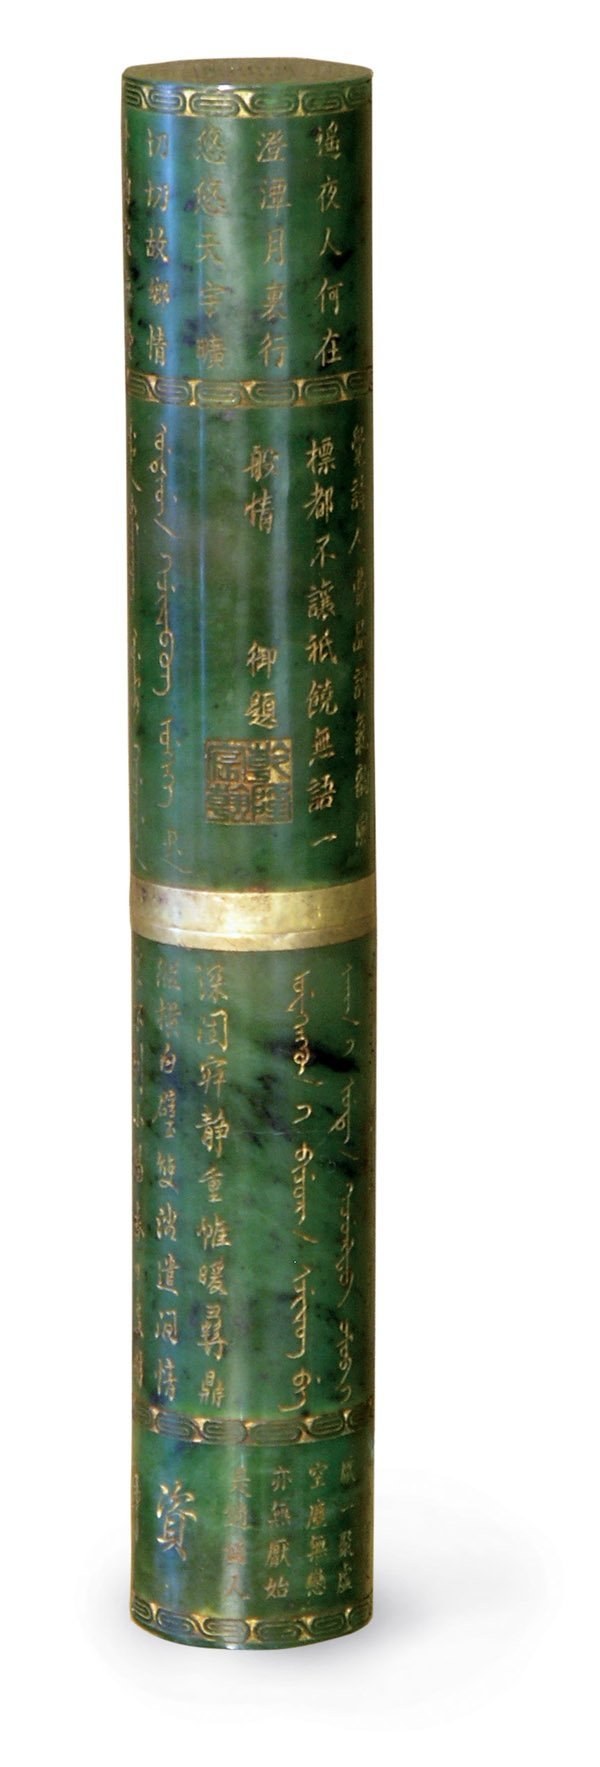 2504: Chinese Manchu Jade Edict Scroll Holder